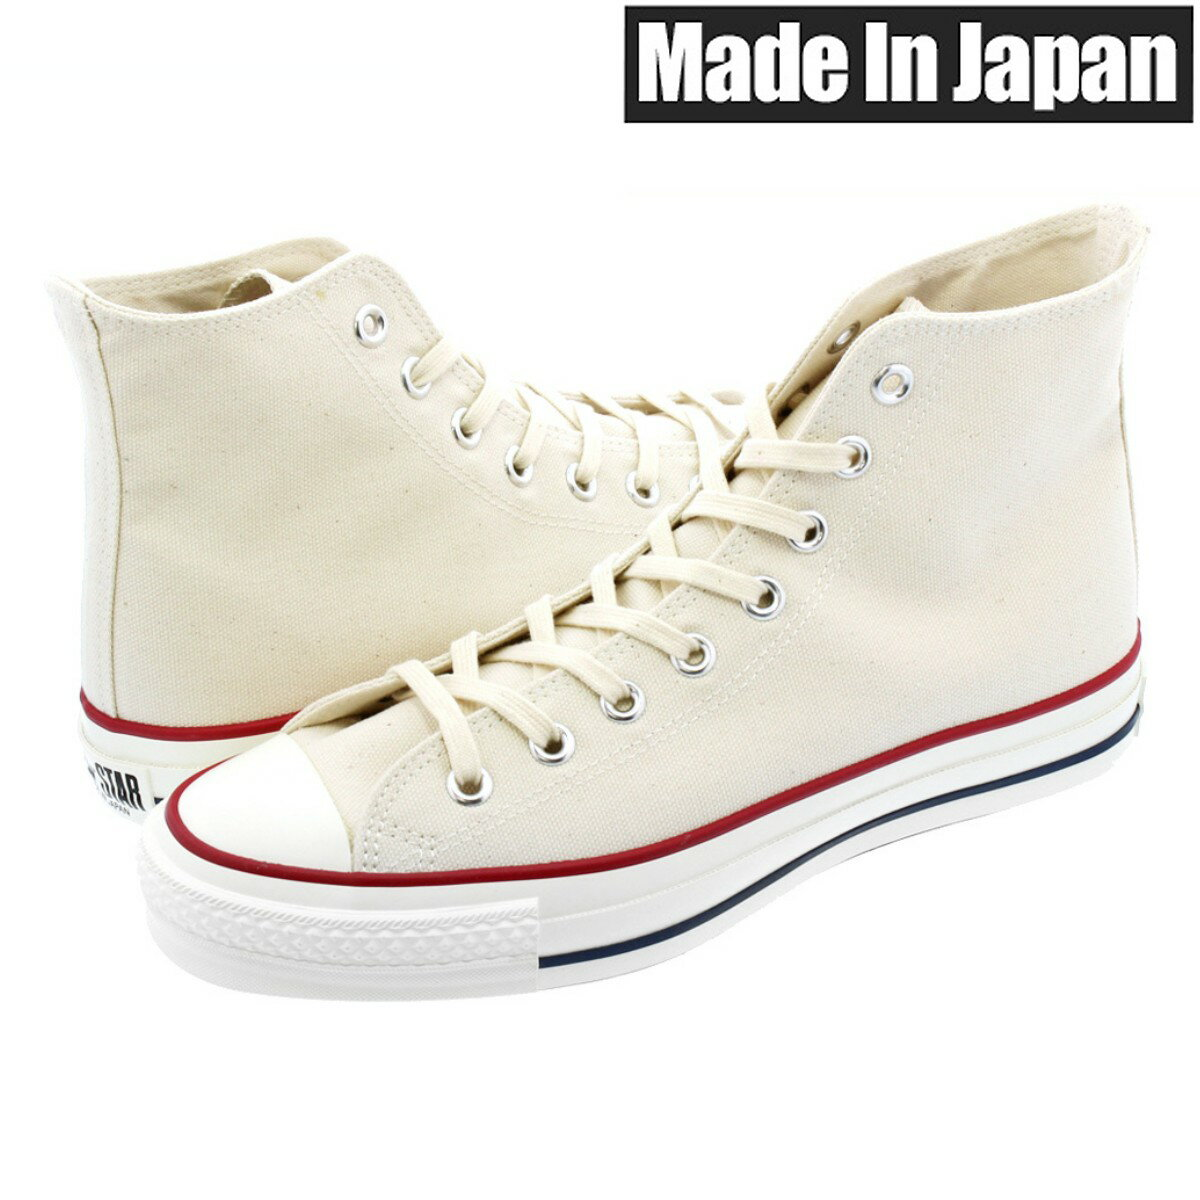 メンズ靴, スニーカー CONVERSE CANVAS ALL STAR J HI MADE IN JAPAN J HI NATURAL WHITE